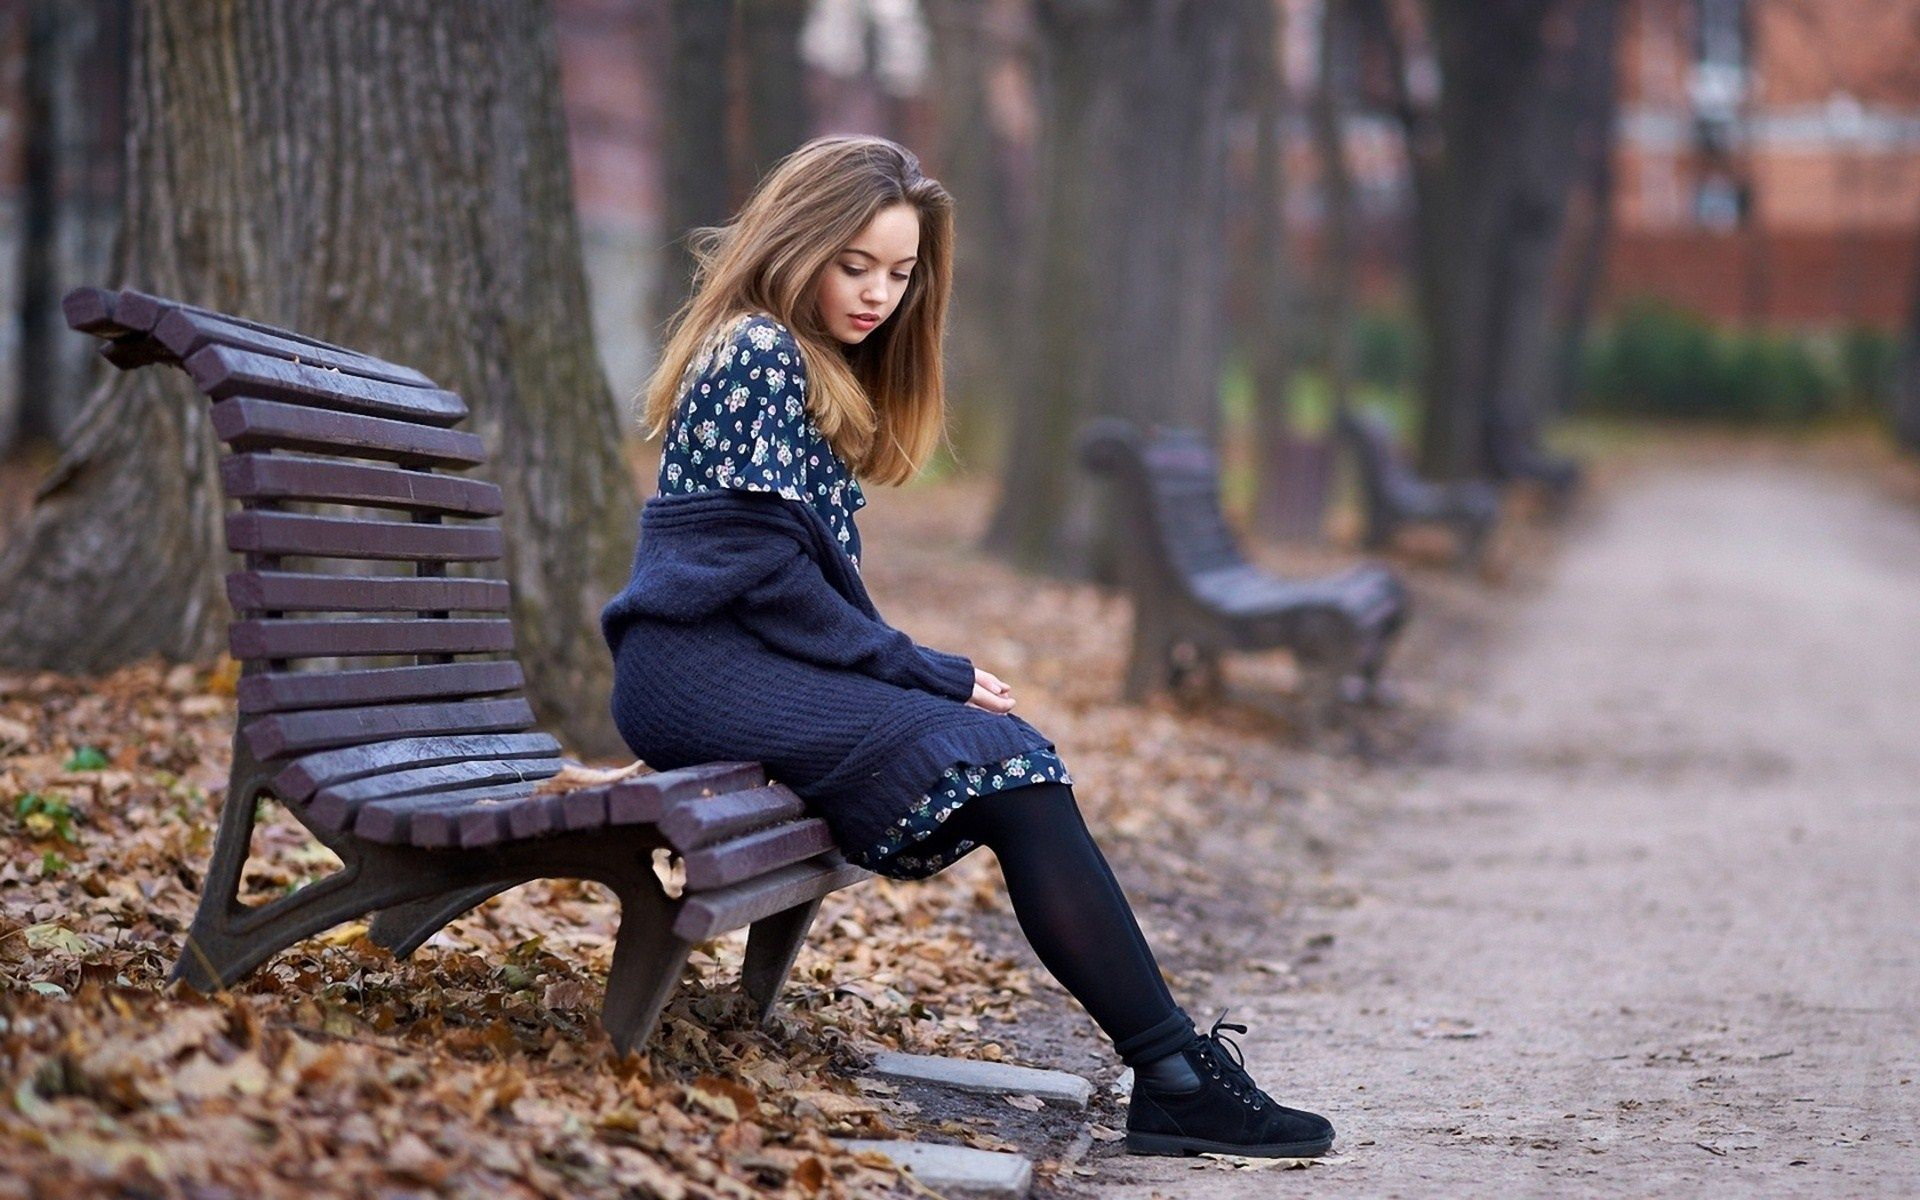 View Beauty Blonde Girl Park Bench Autumn Photo Hd Wallpaper Fall Photos Autumn Park Blonde Girl